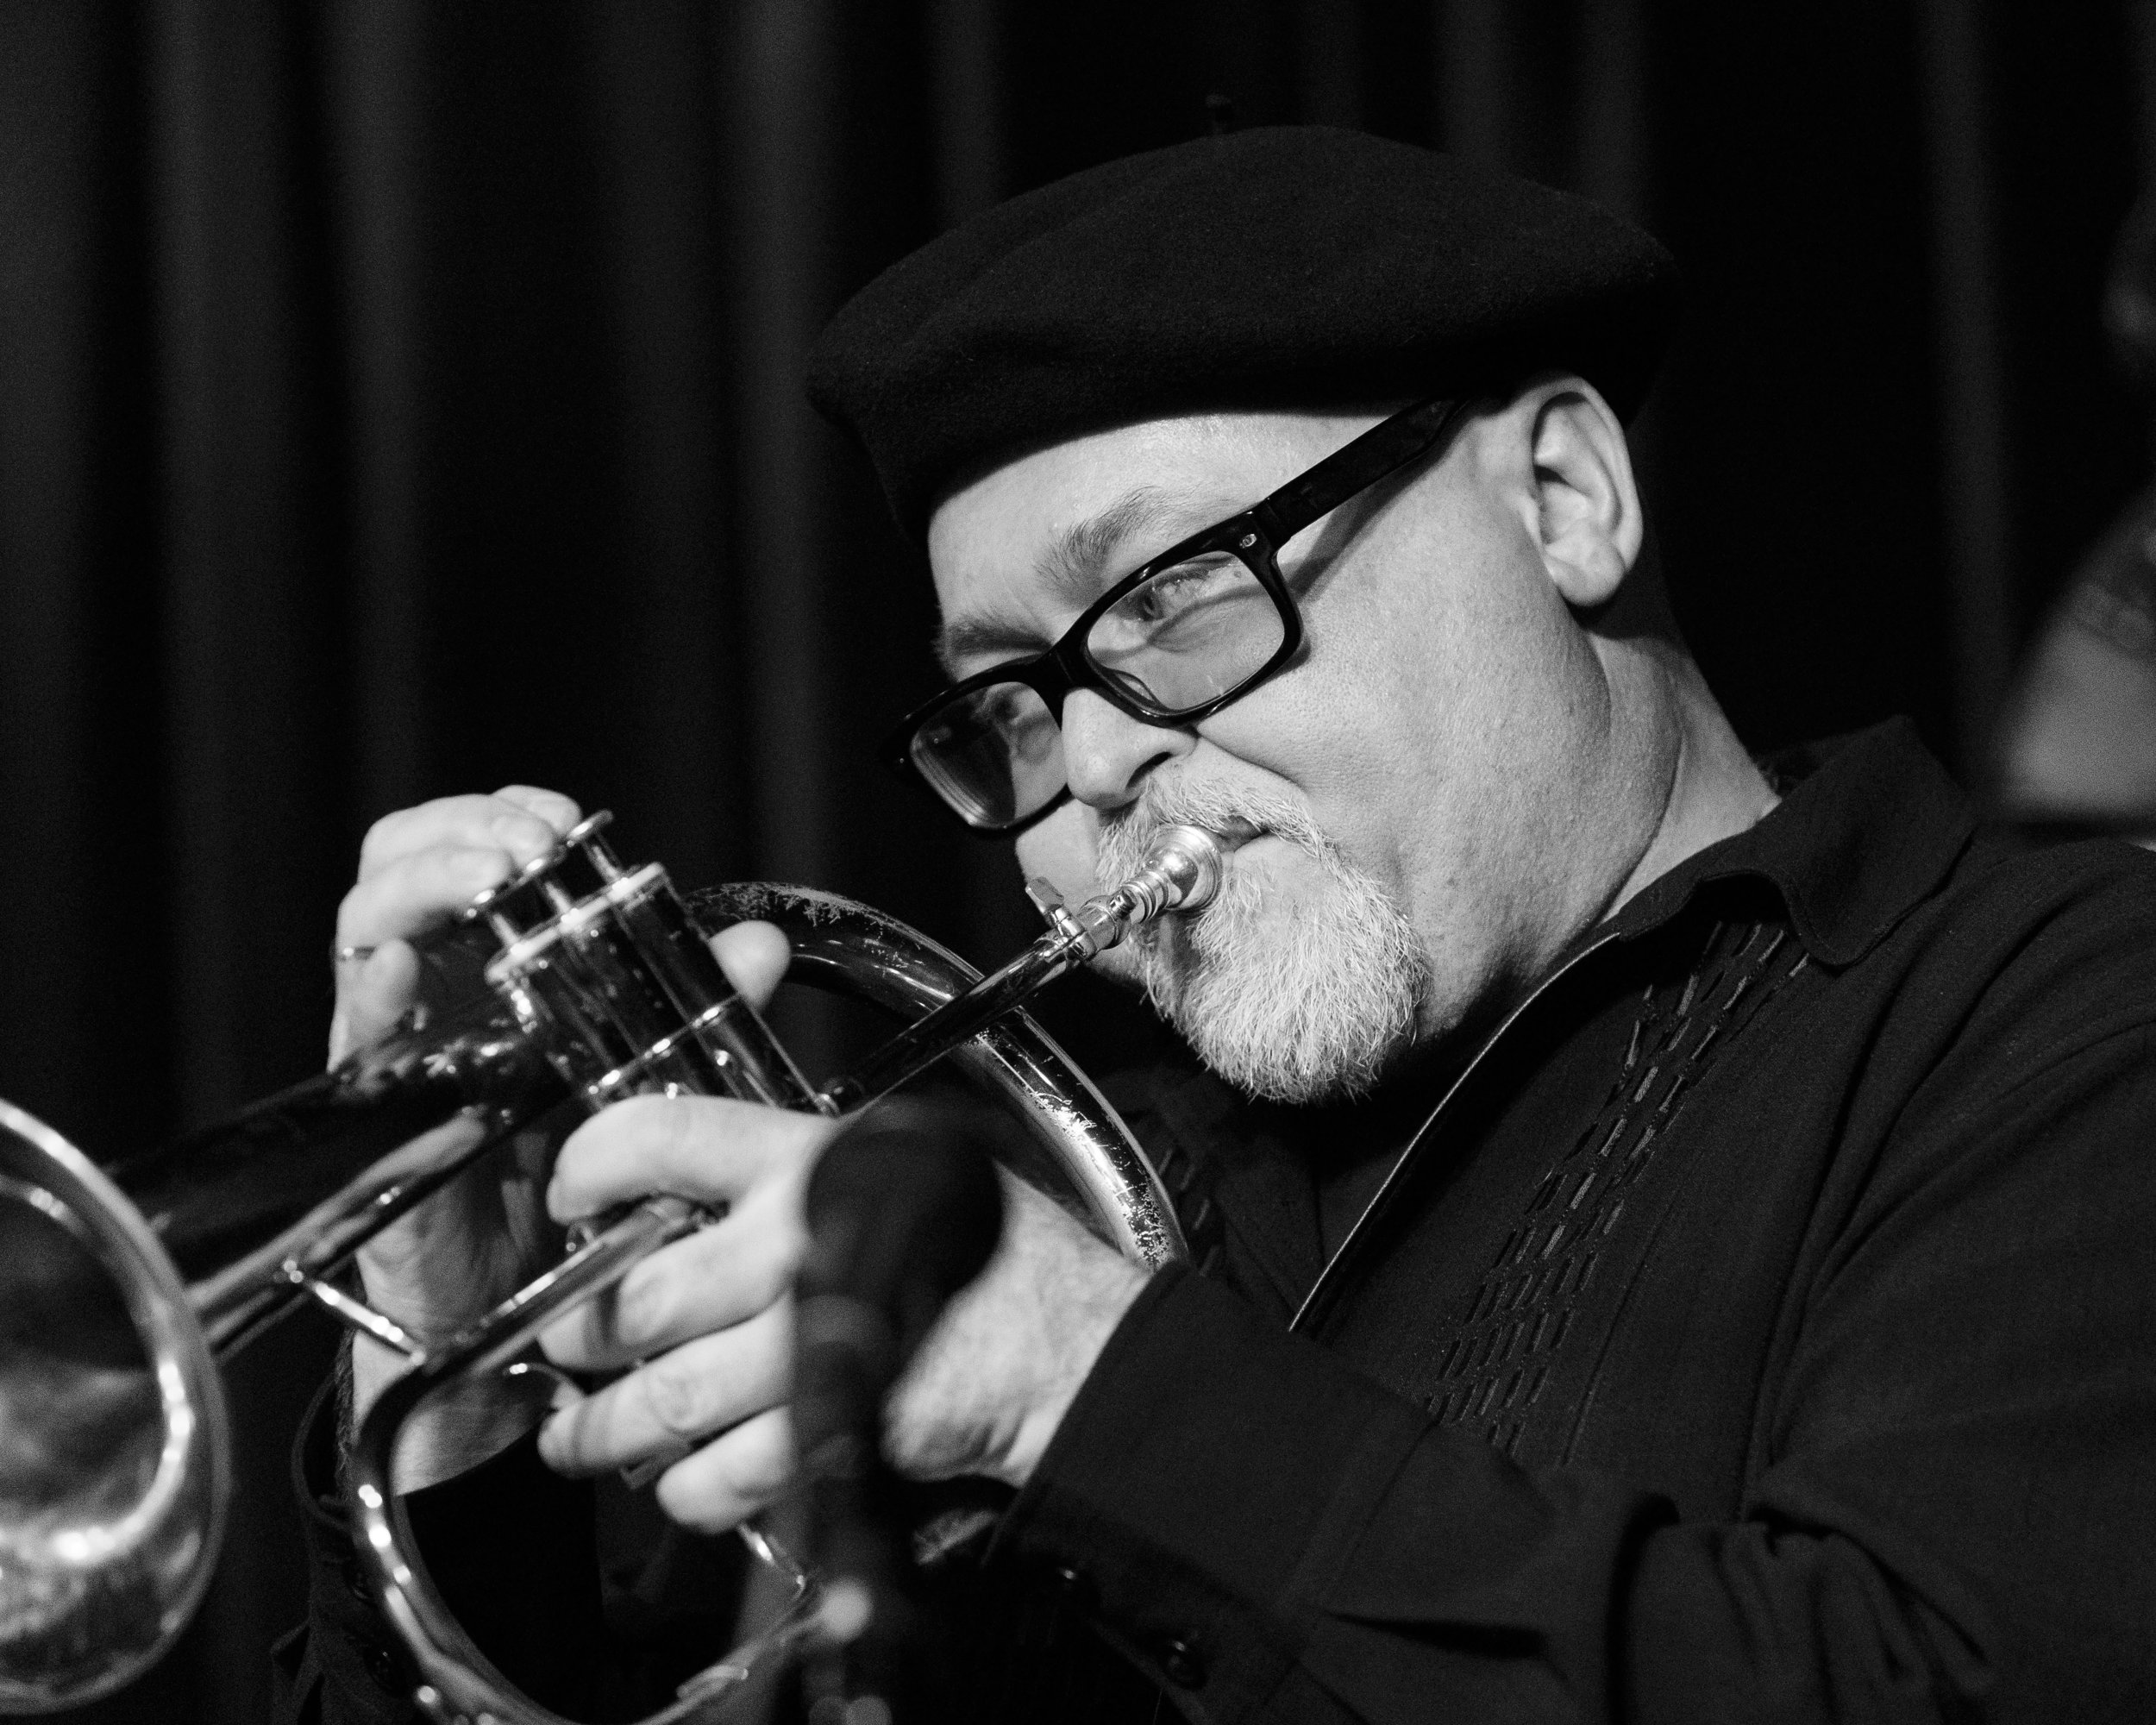 Dmitri Matheny on flugelhorn celebrating the music of Art Farmer at The Nash Jazz Club.